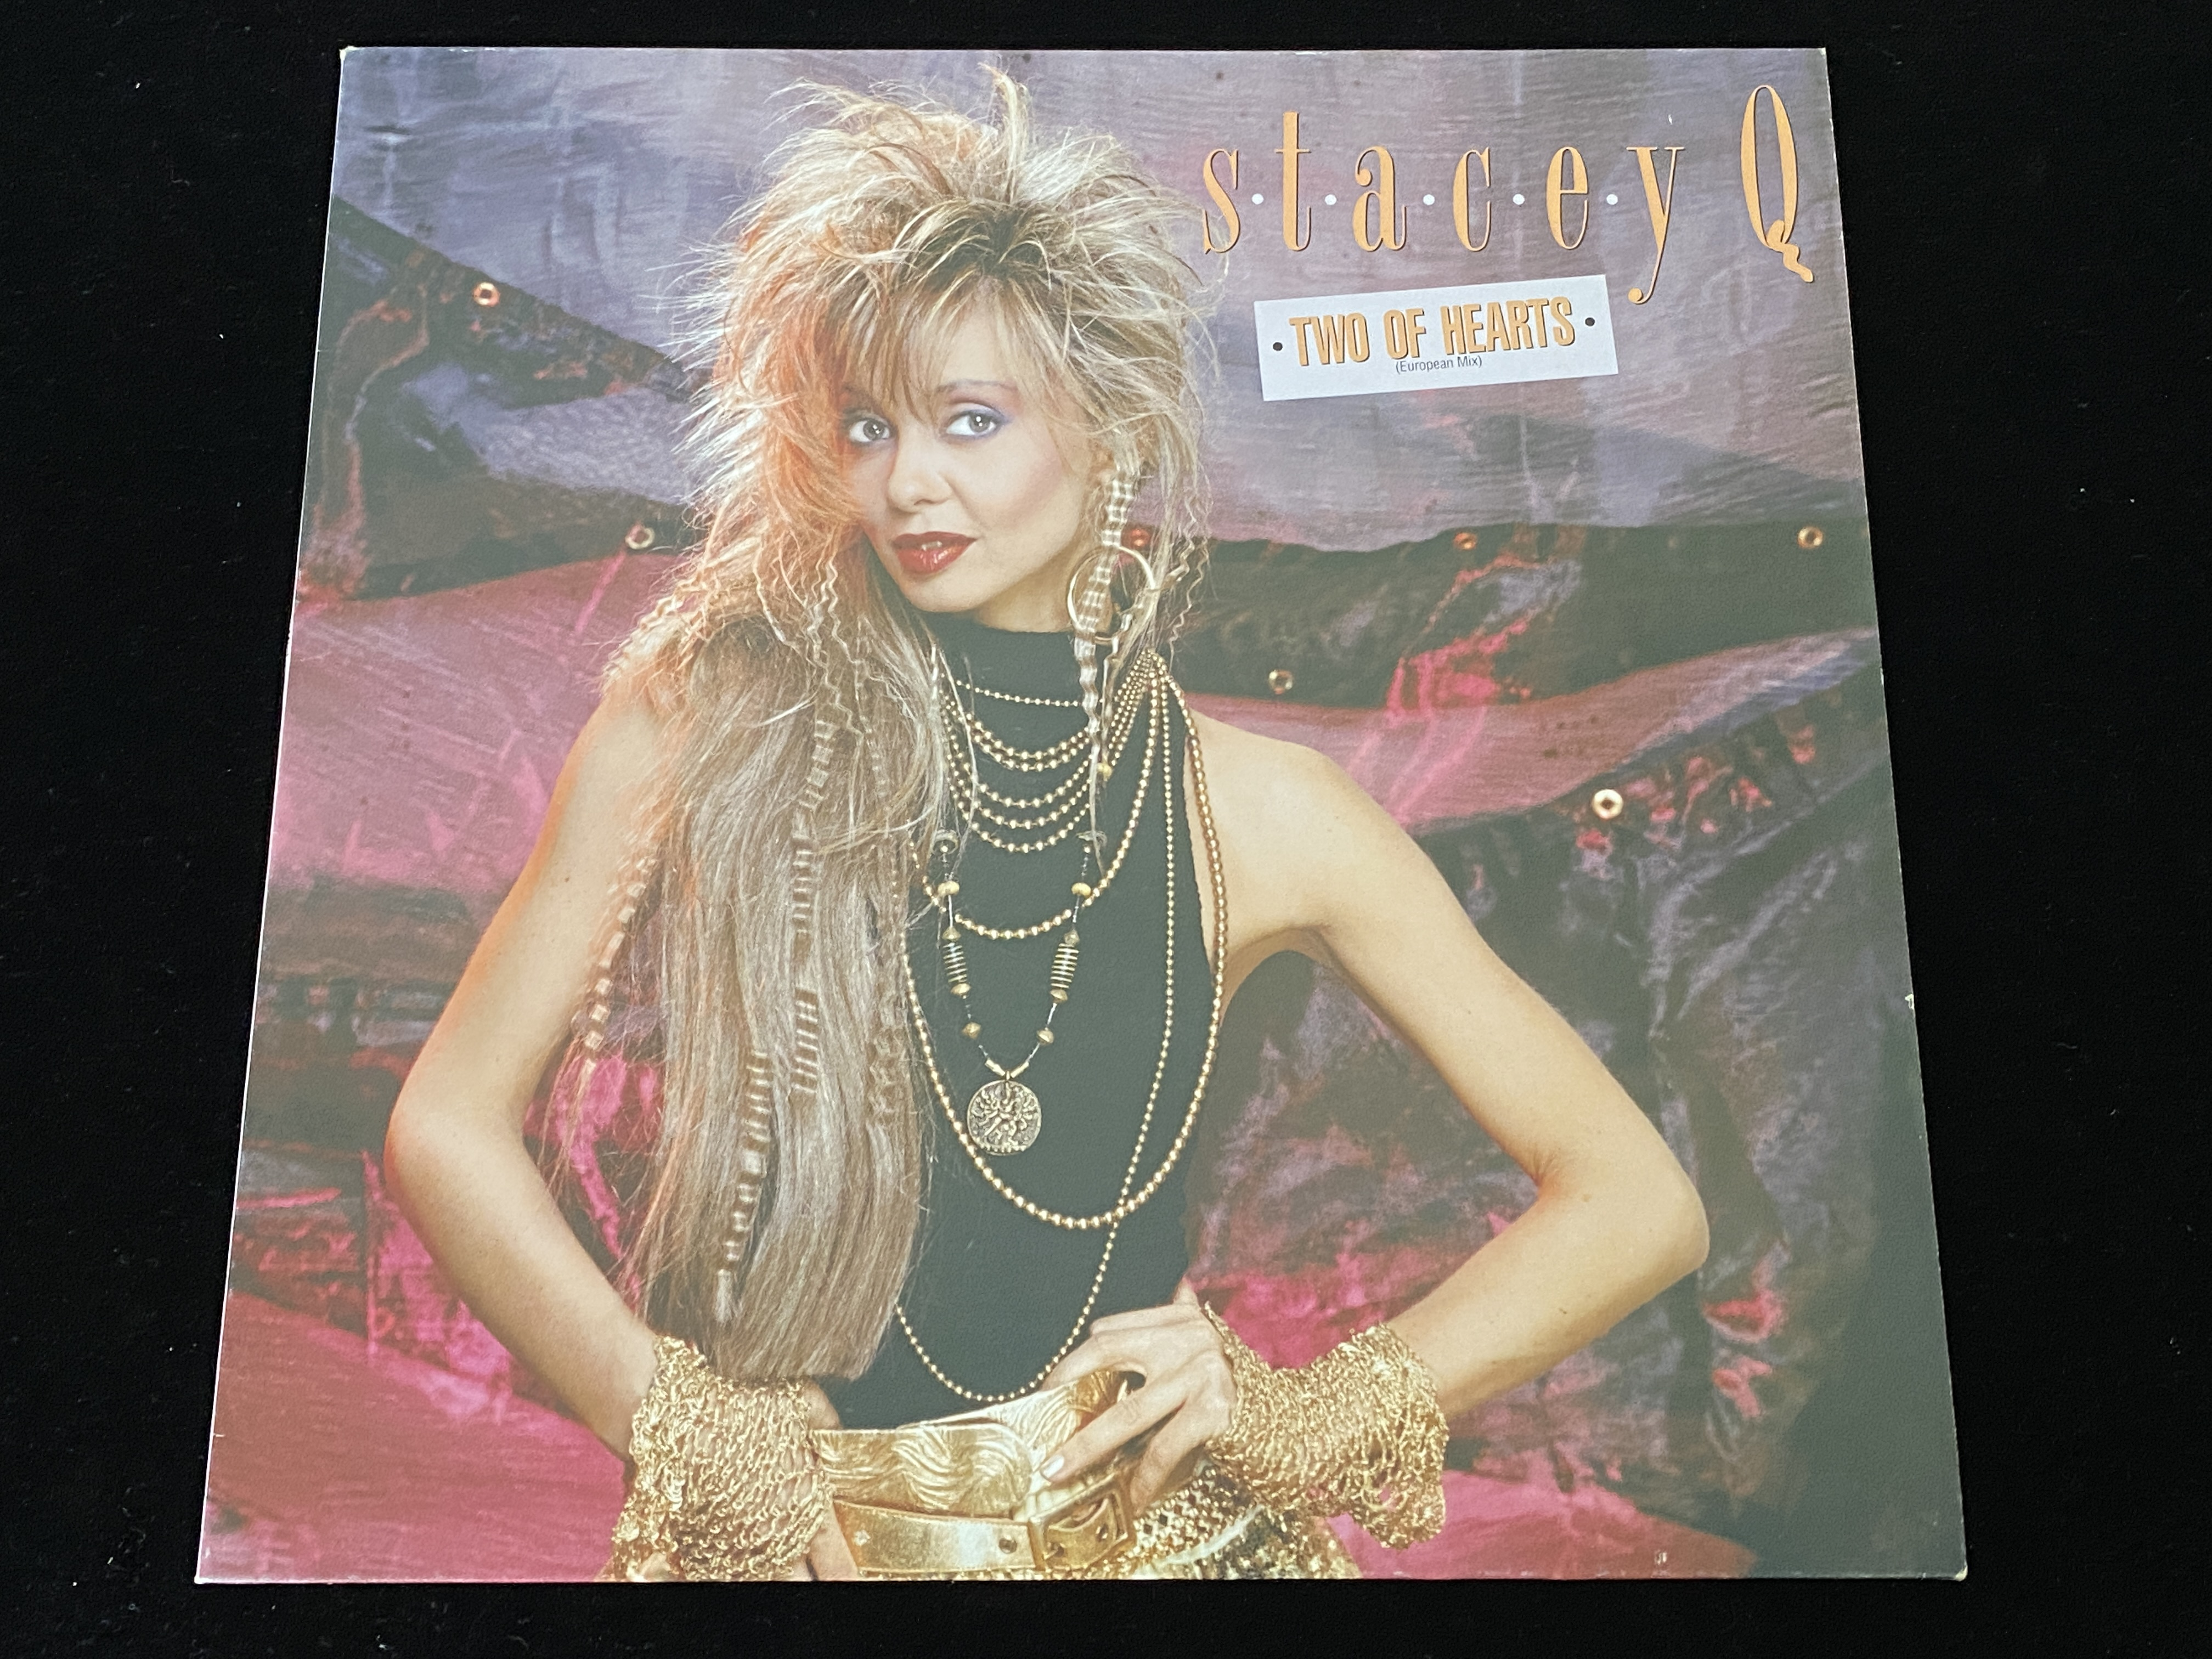 Stacey Q - Two of Hearts (Maxi-Single, EU, 1986)